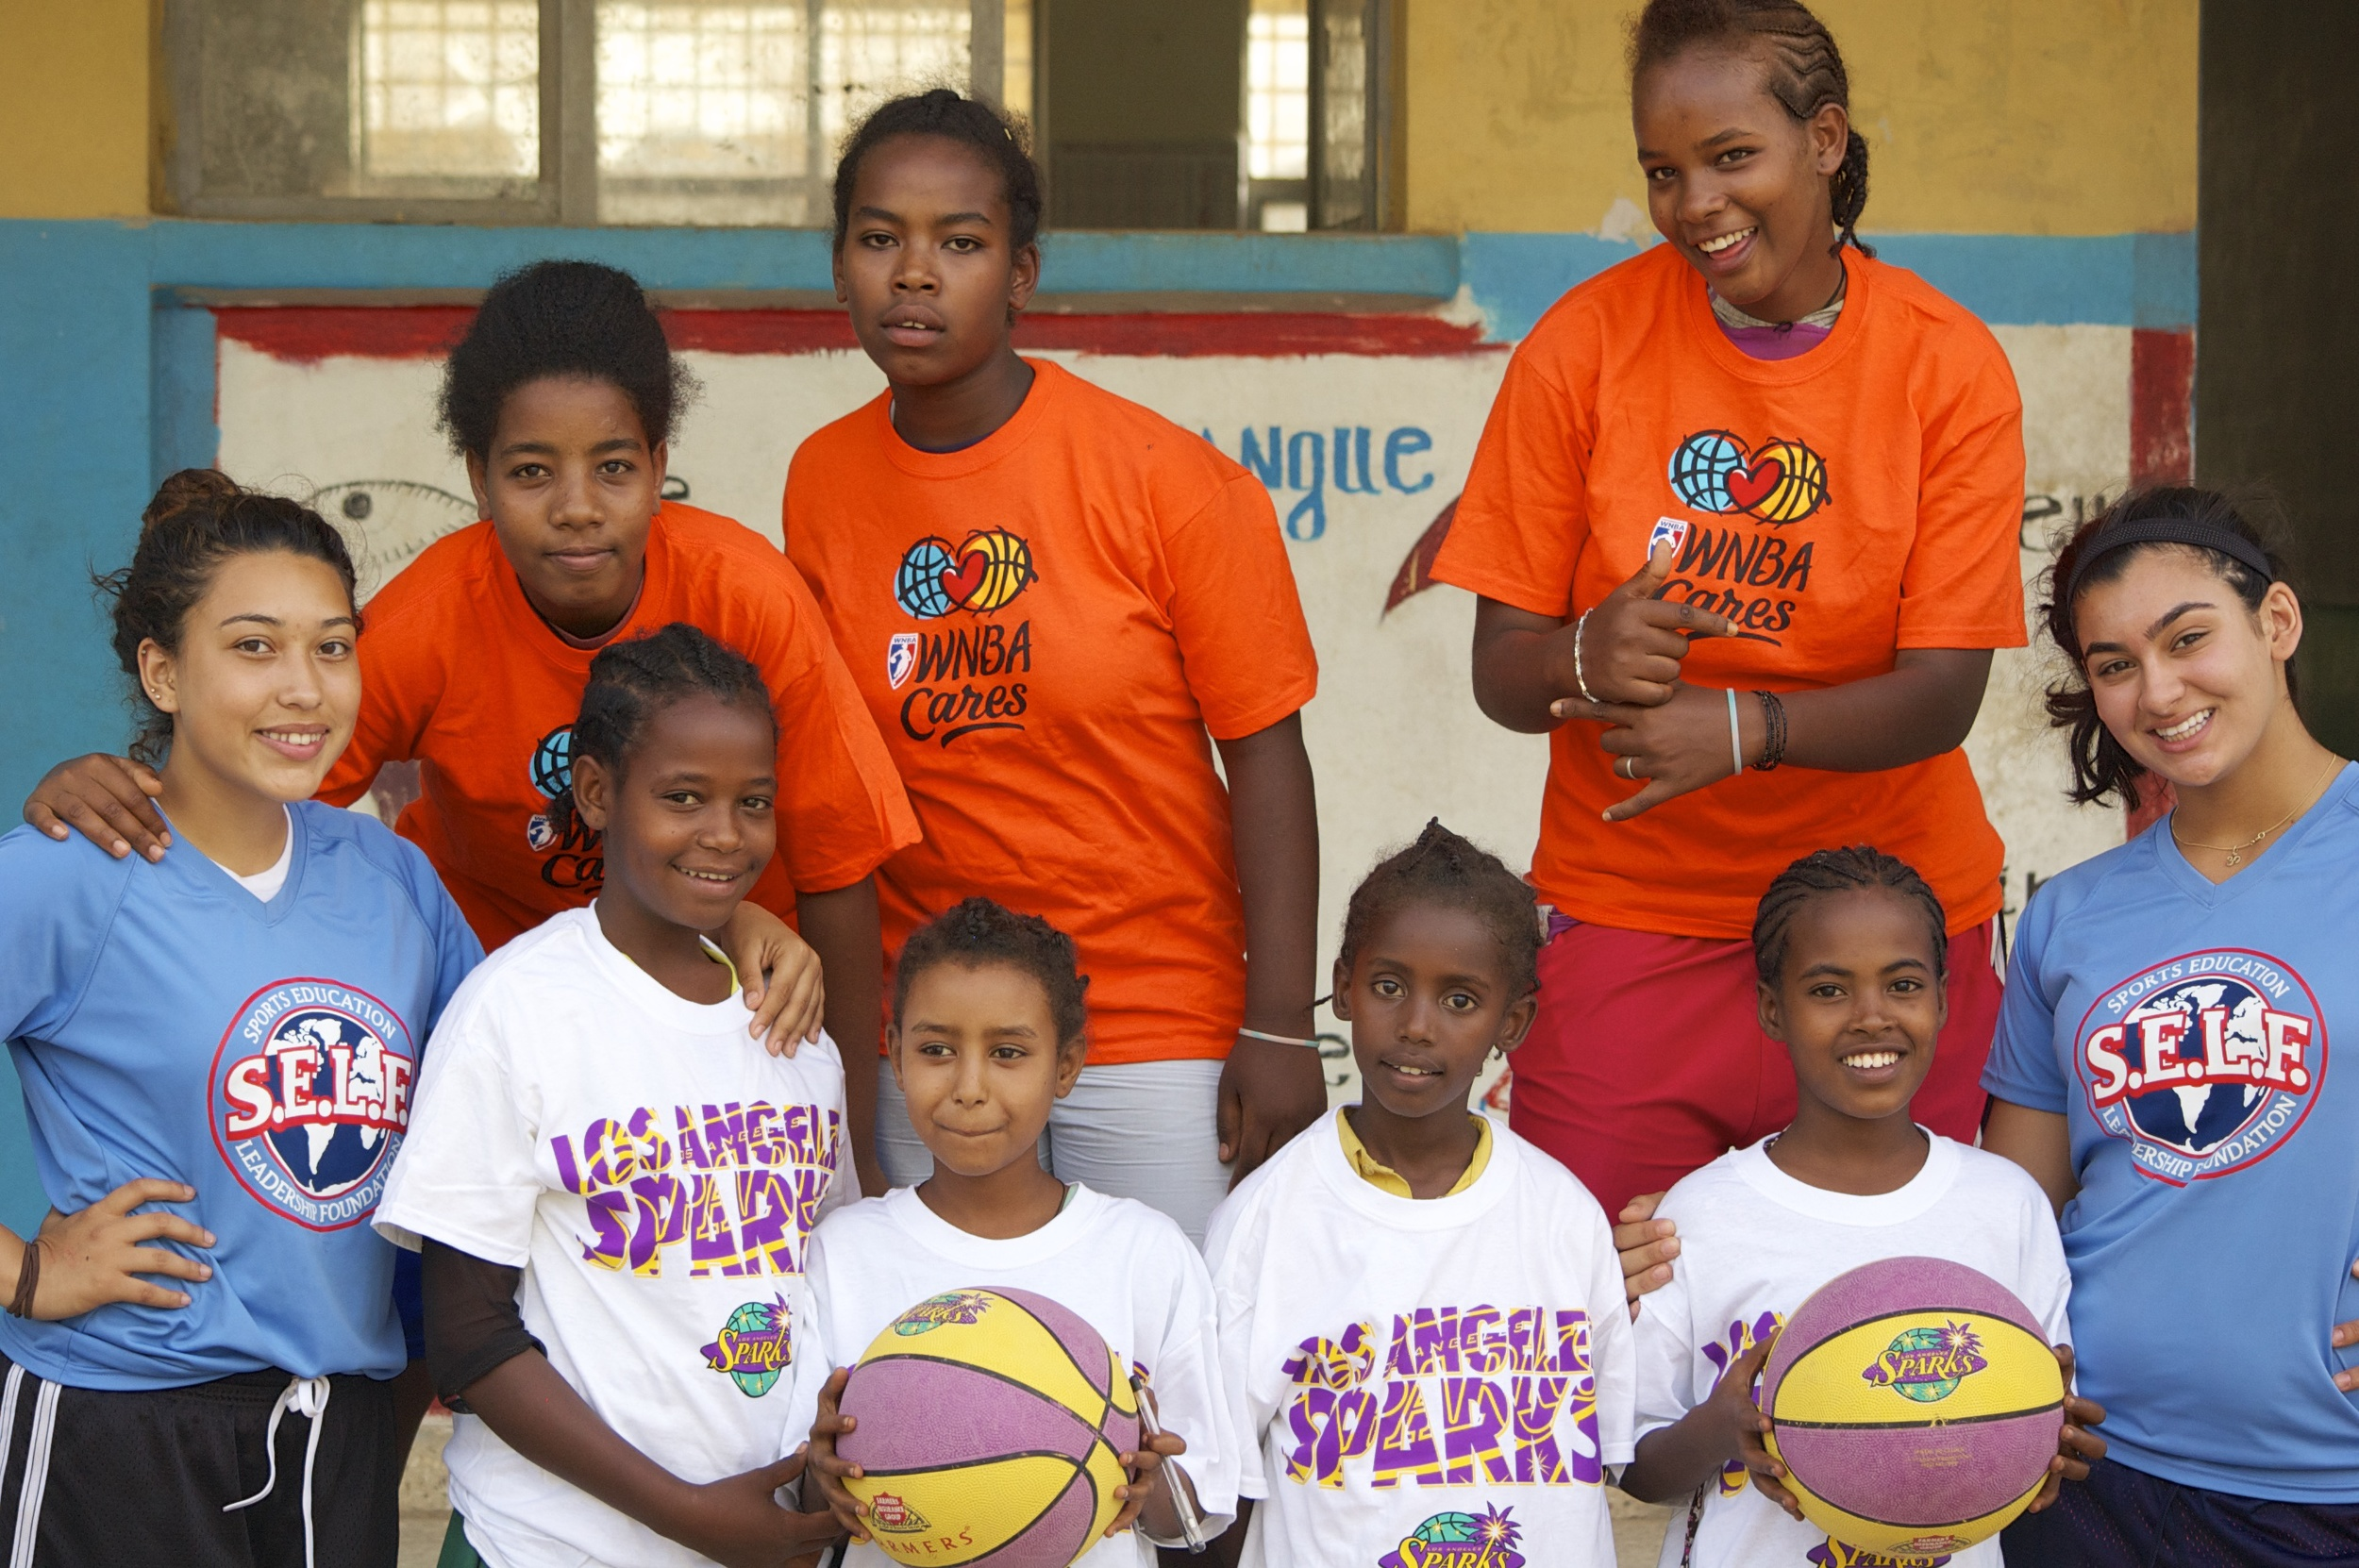 Wendy and Hanna with girls and their new WNBA Cares and Sparks t-shirts